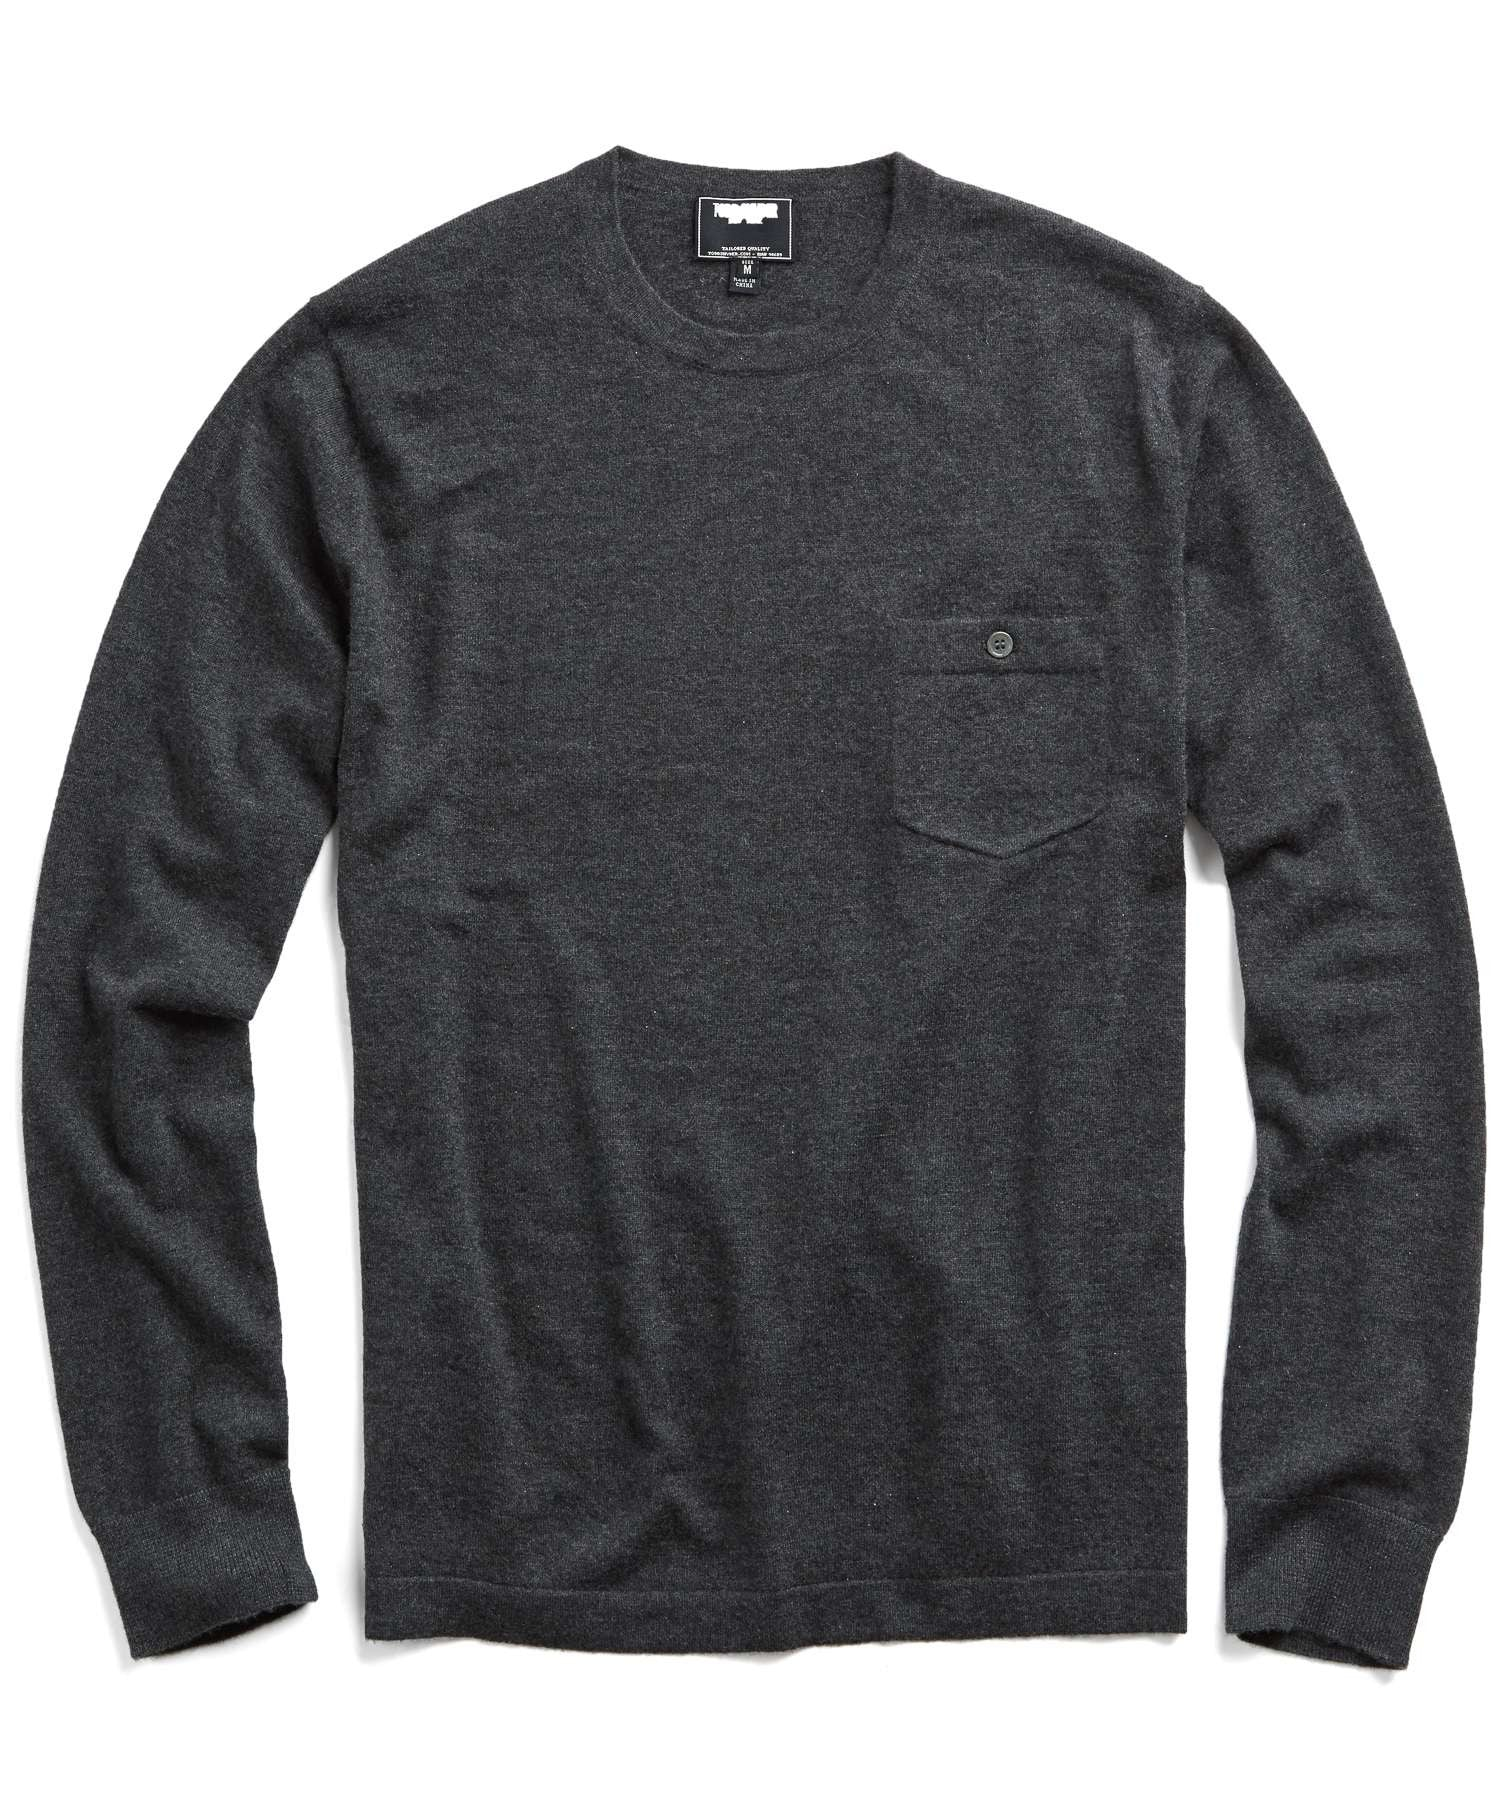 Cashmere T-Shirt Sweater in Charcoal